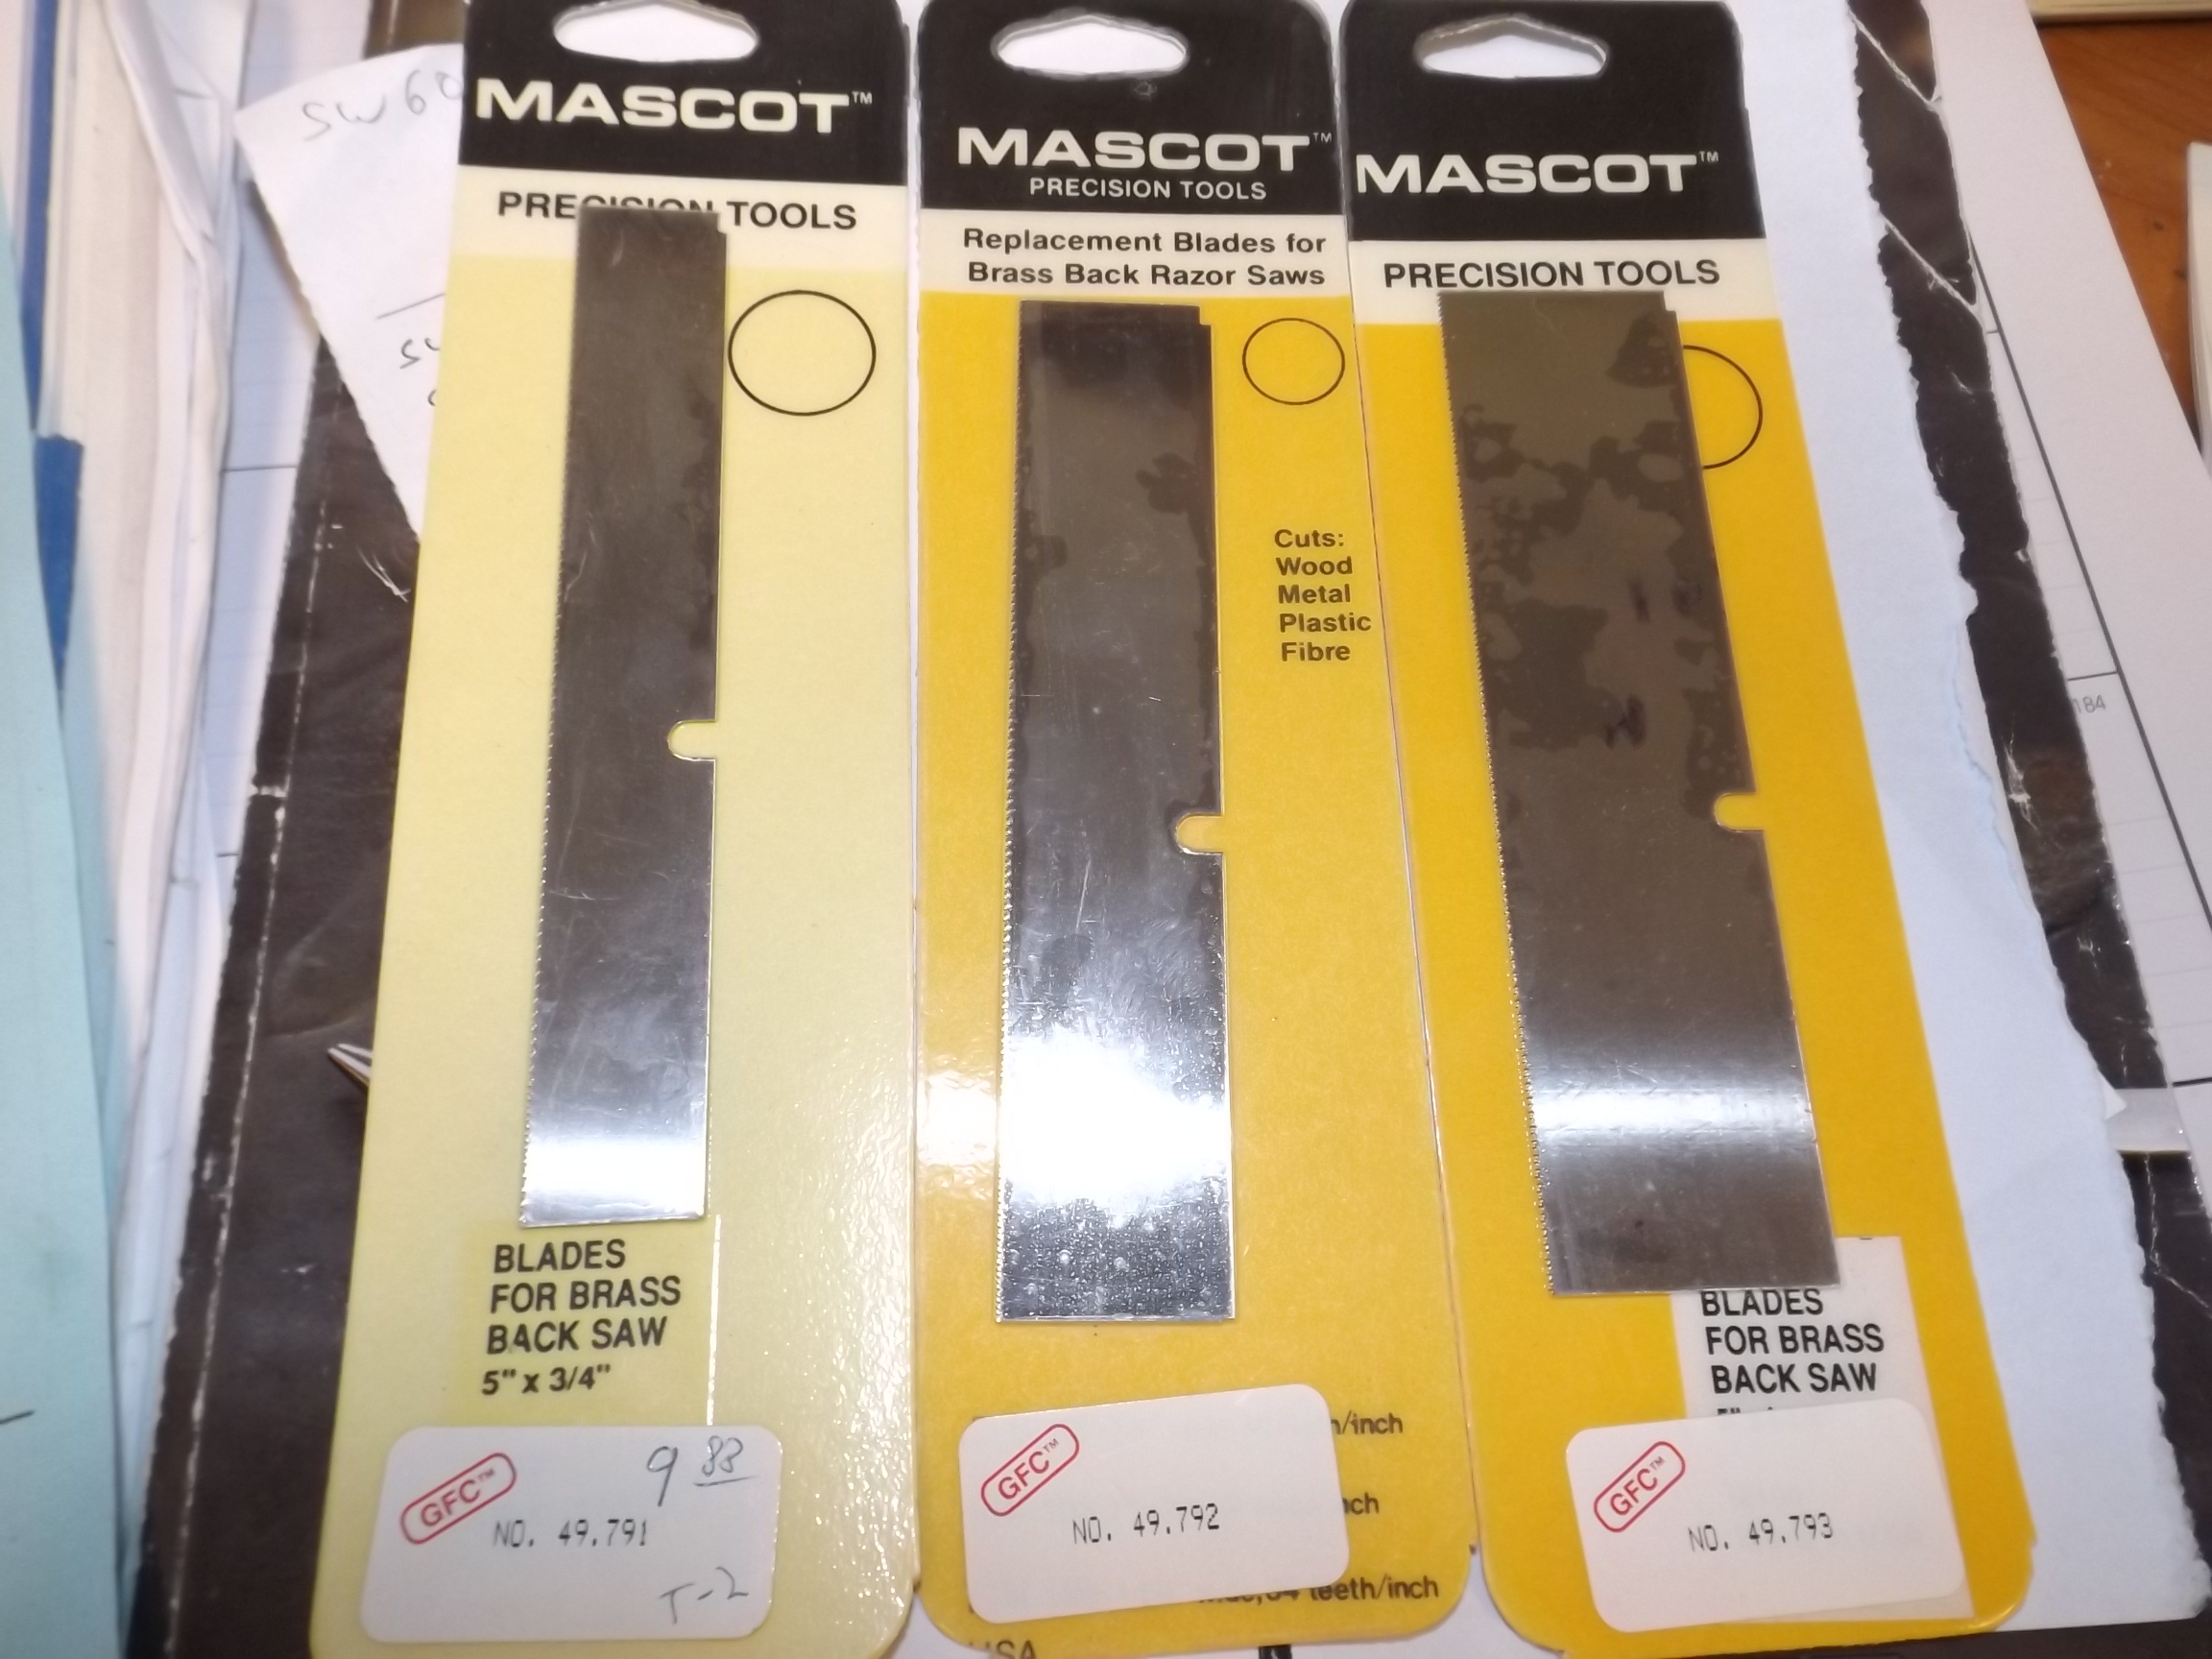 SW792 Replacement Blades for Brass Back Razor Saws-Mascot Brand by Grobet #49.792 Discontinued